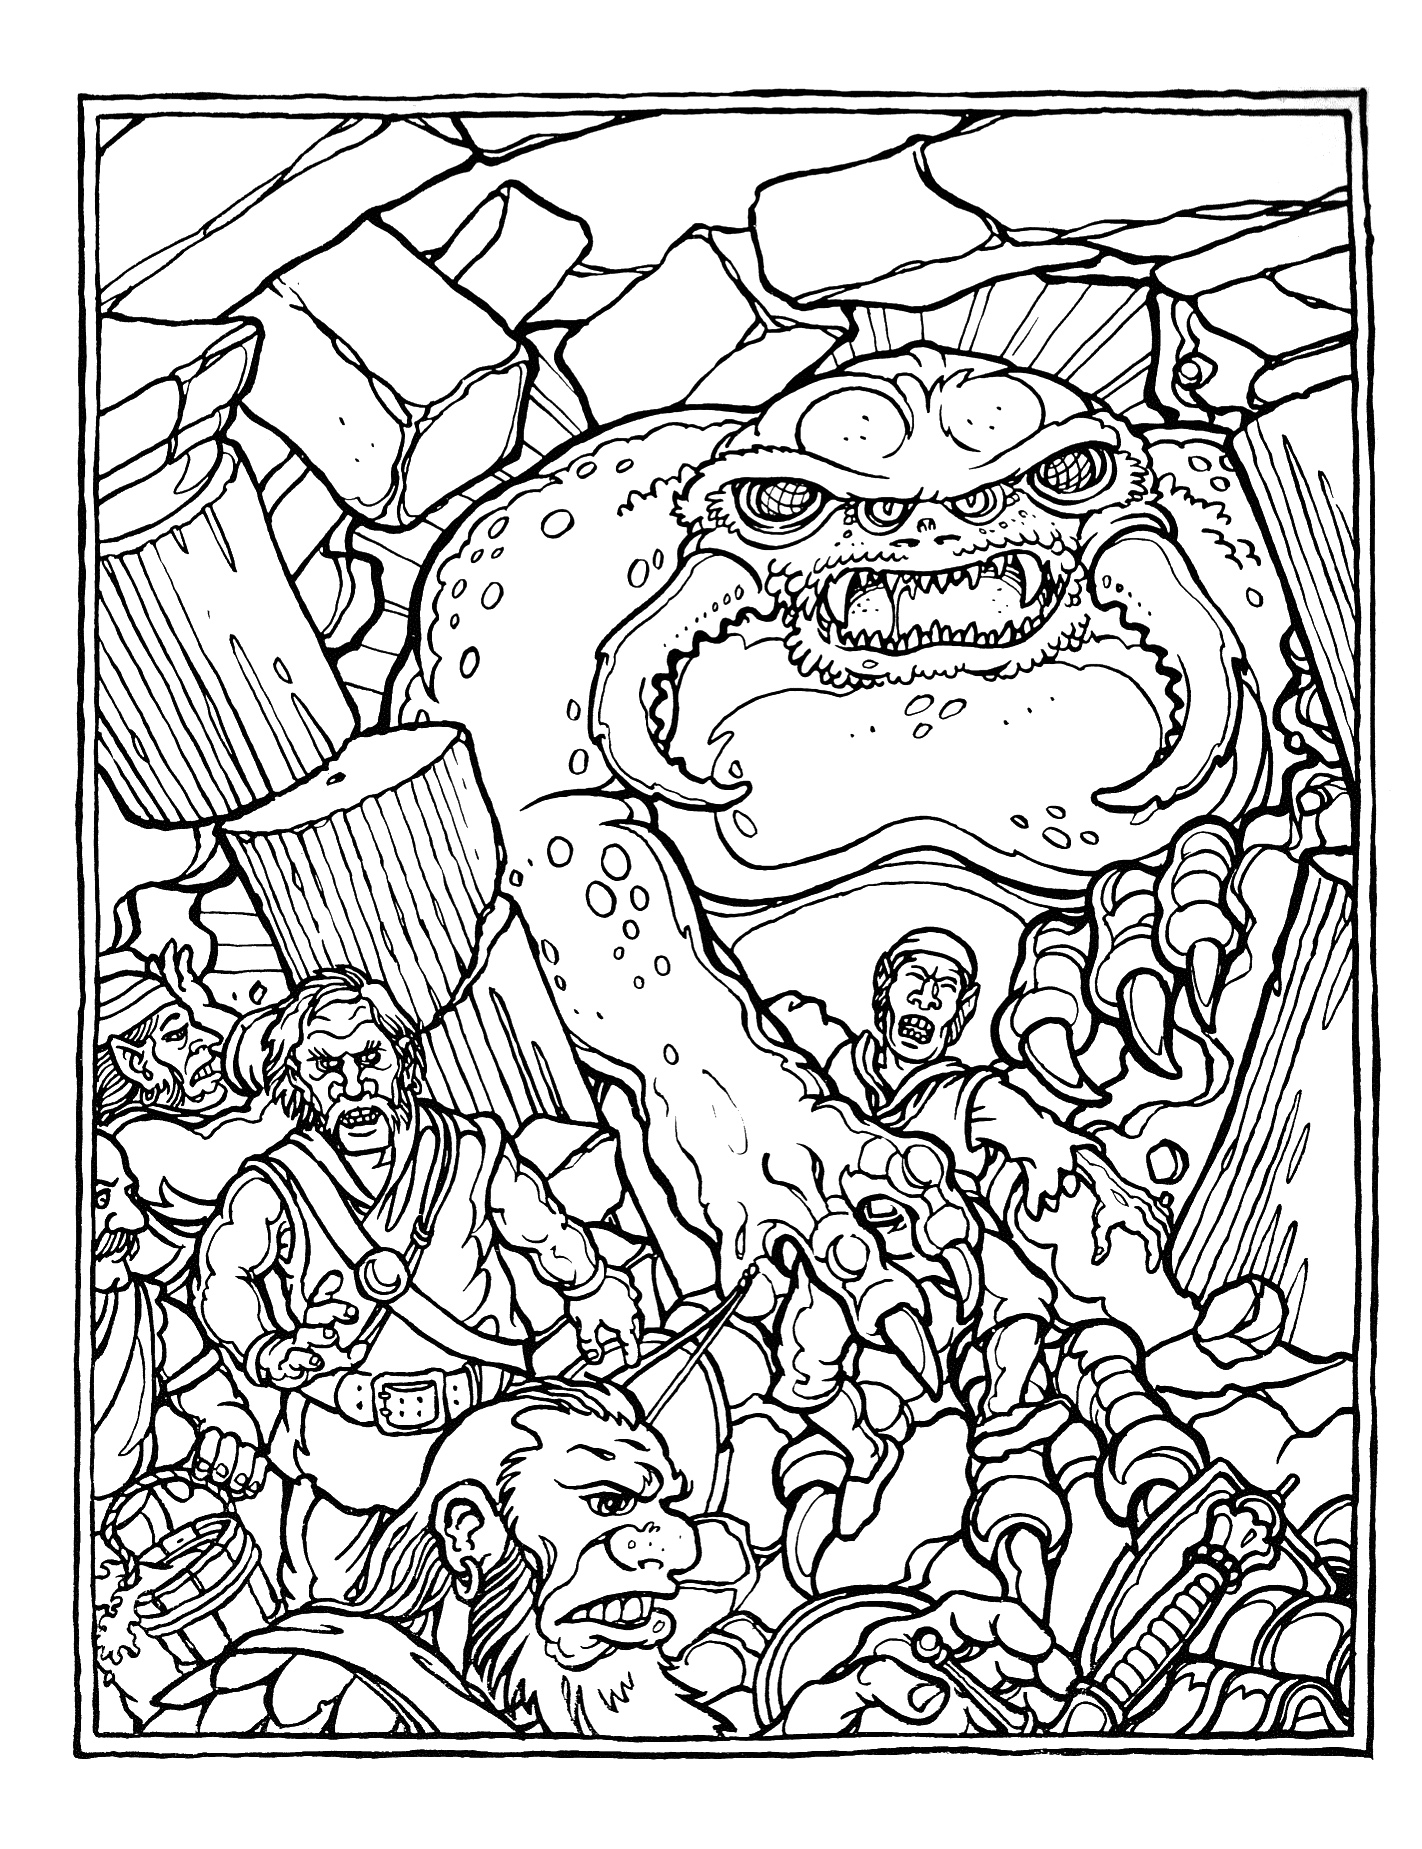 dungeons and dragons coloring pages - photo #4